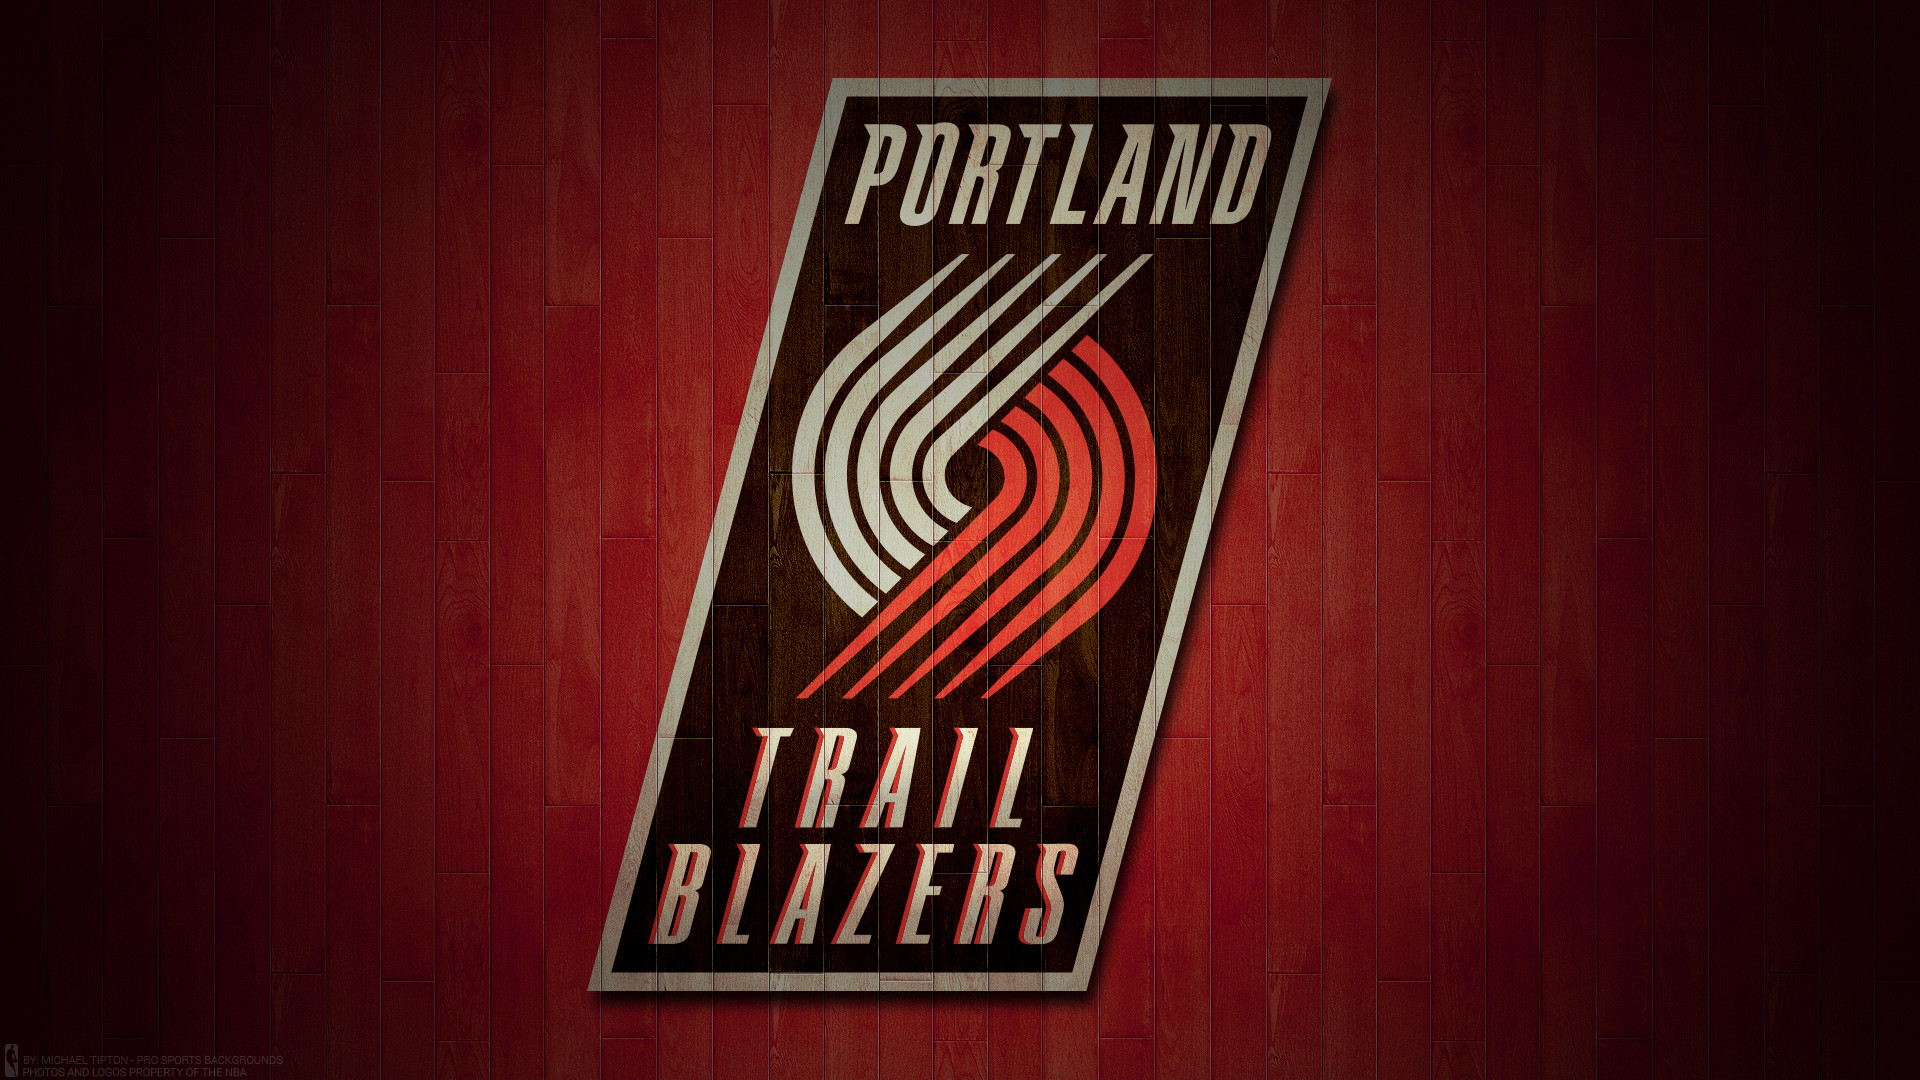 Portland Trail Blazers Wallpapers 183 ① Wallpapertag